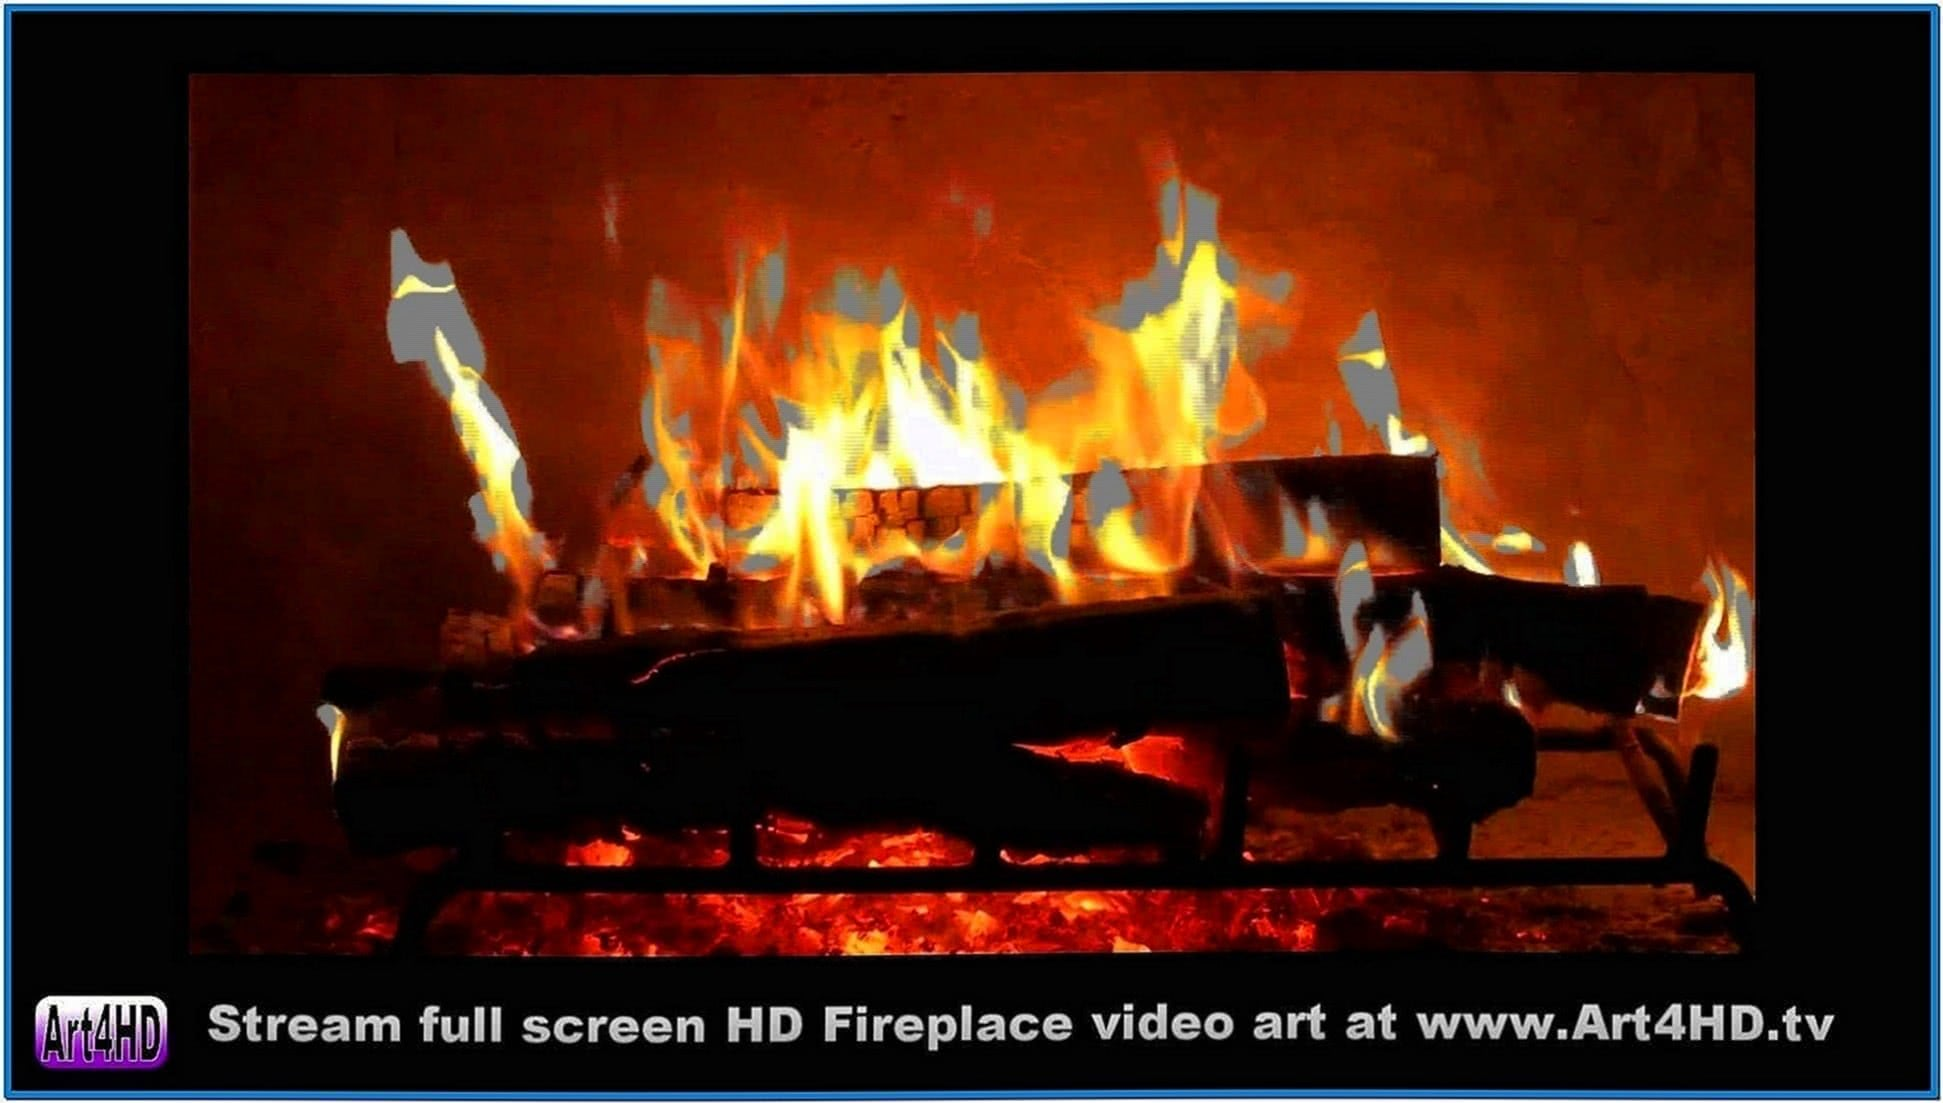 HD Fireplace Screensaver for TV